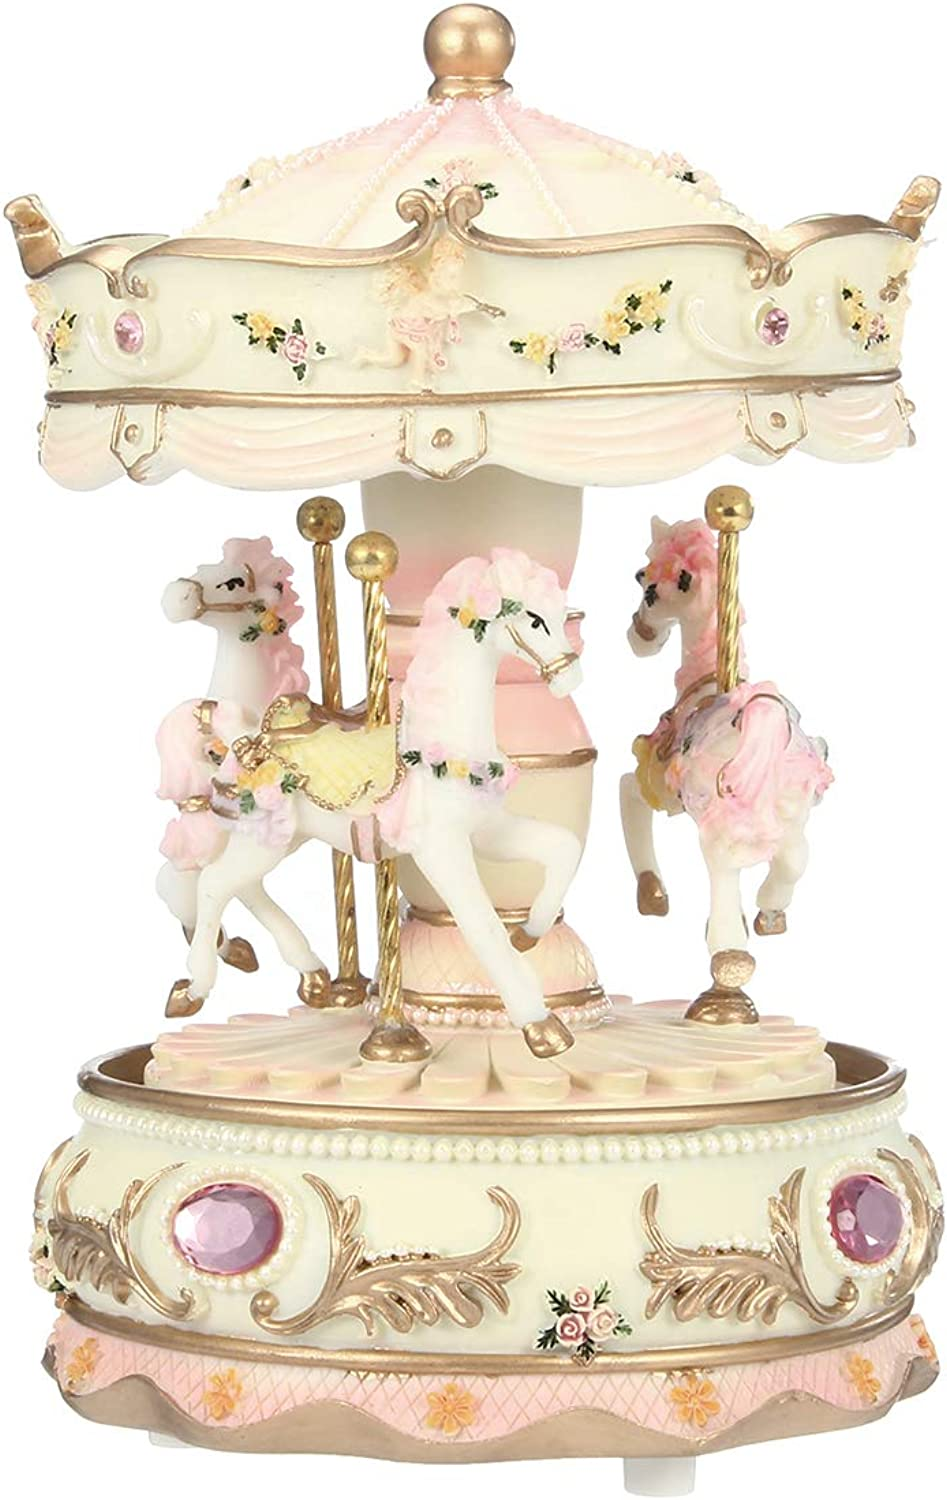 VIDOO 7 colors Led Flash Light Horse Classic MerryGoRound Carousel Music Box Birthday GiftHappy Birthday